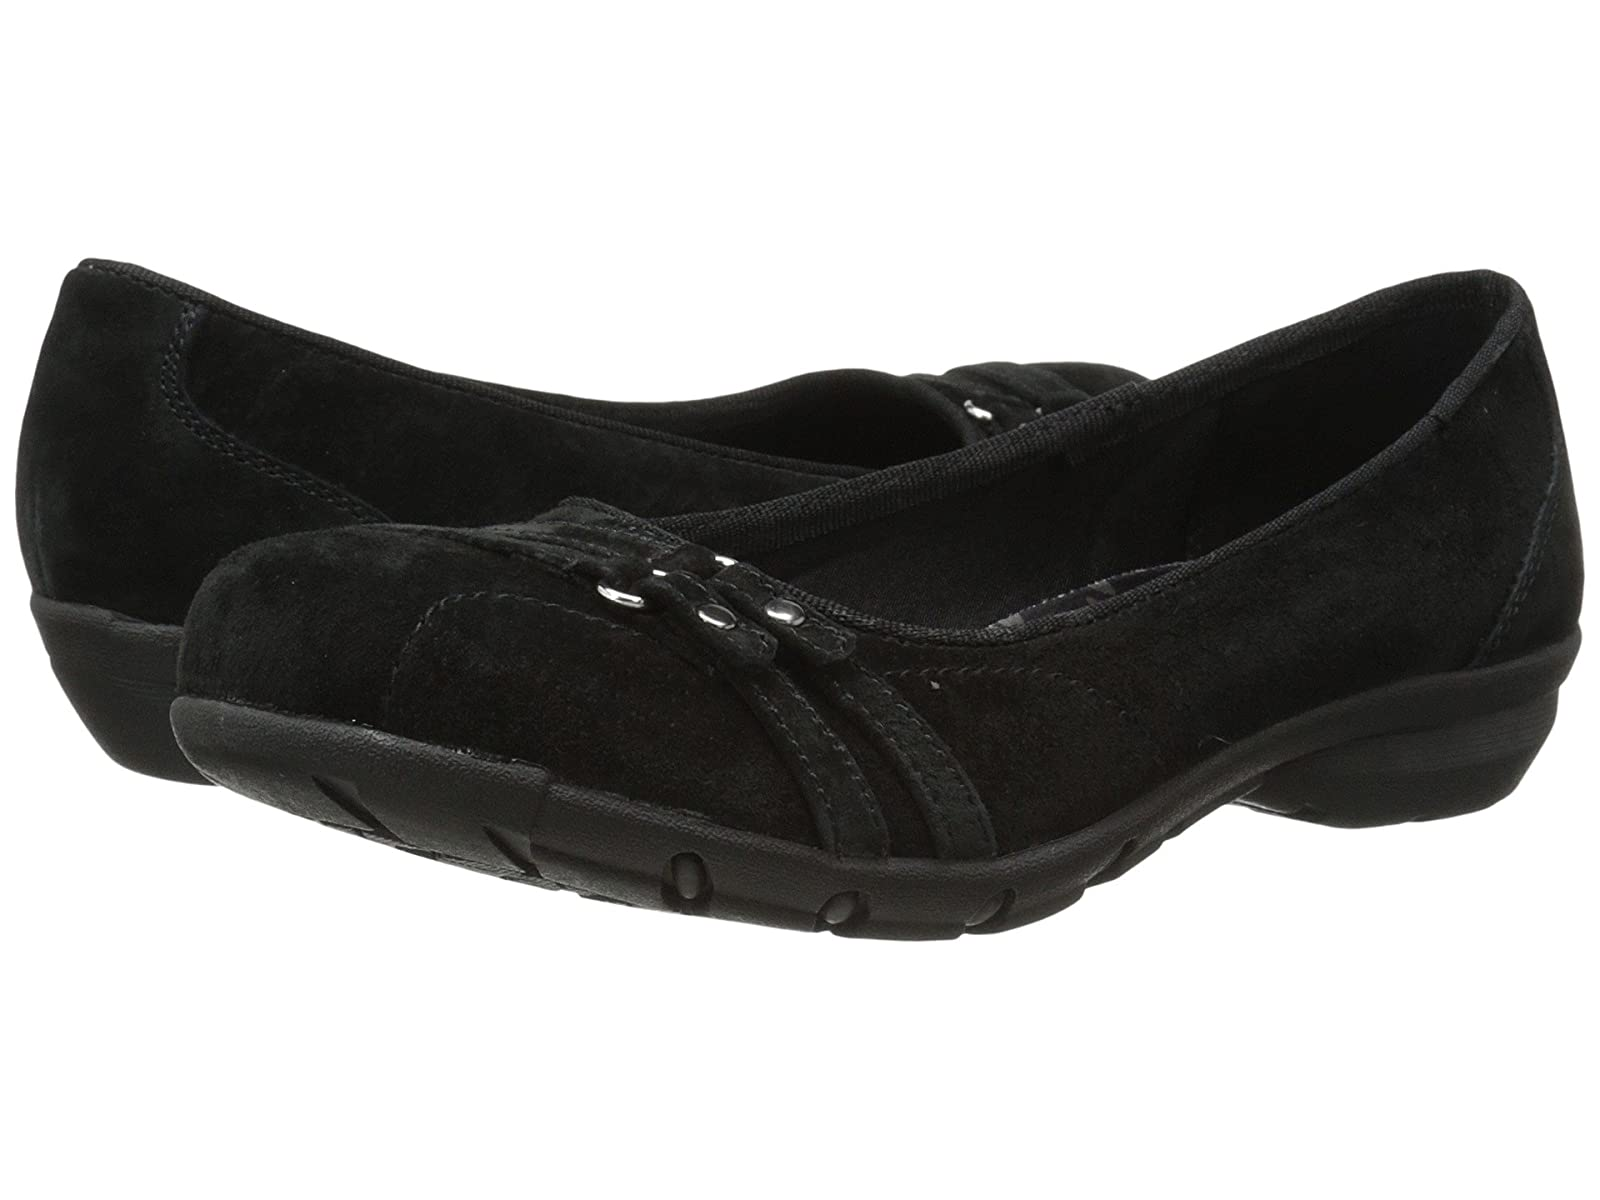 SKECHERS Career - Happy hourCheap and distinctive eye-catching shoes